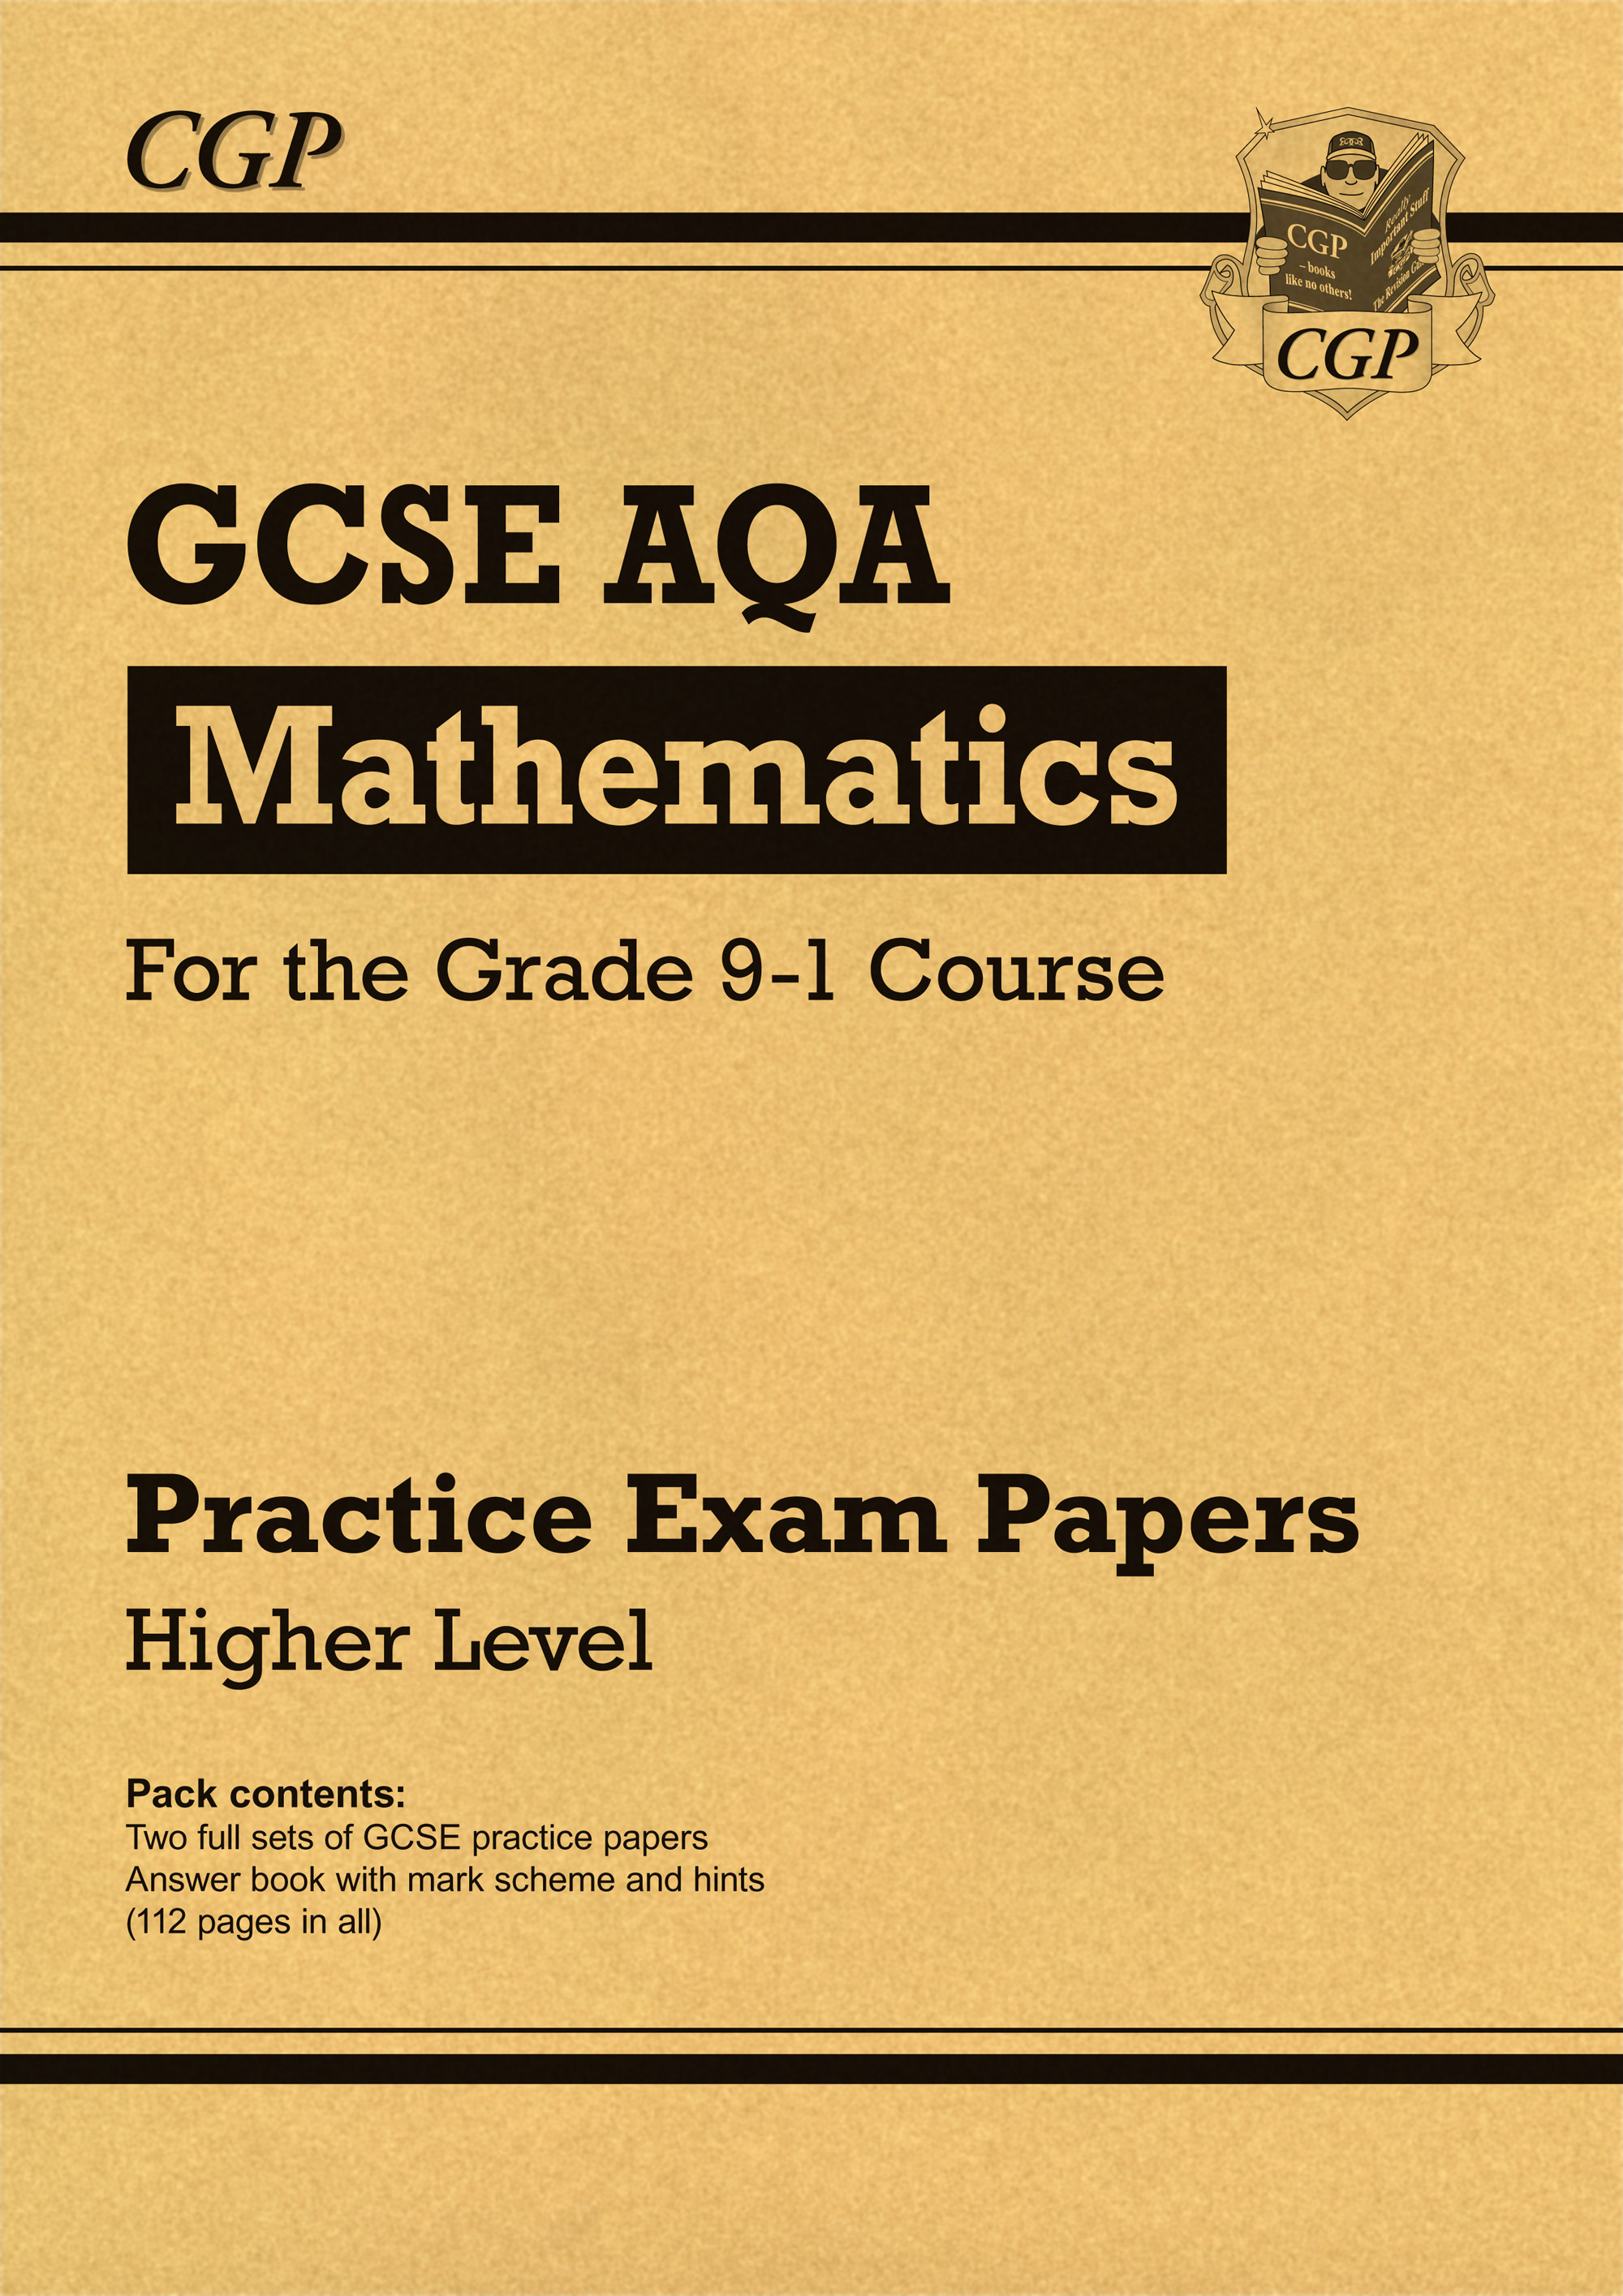 MQHP43 - GCSE Maths AQA Practice Papers: Higher - for the Grade 9-1 Course